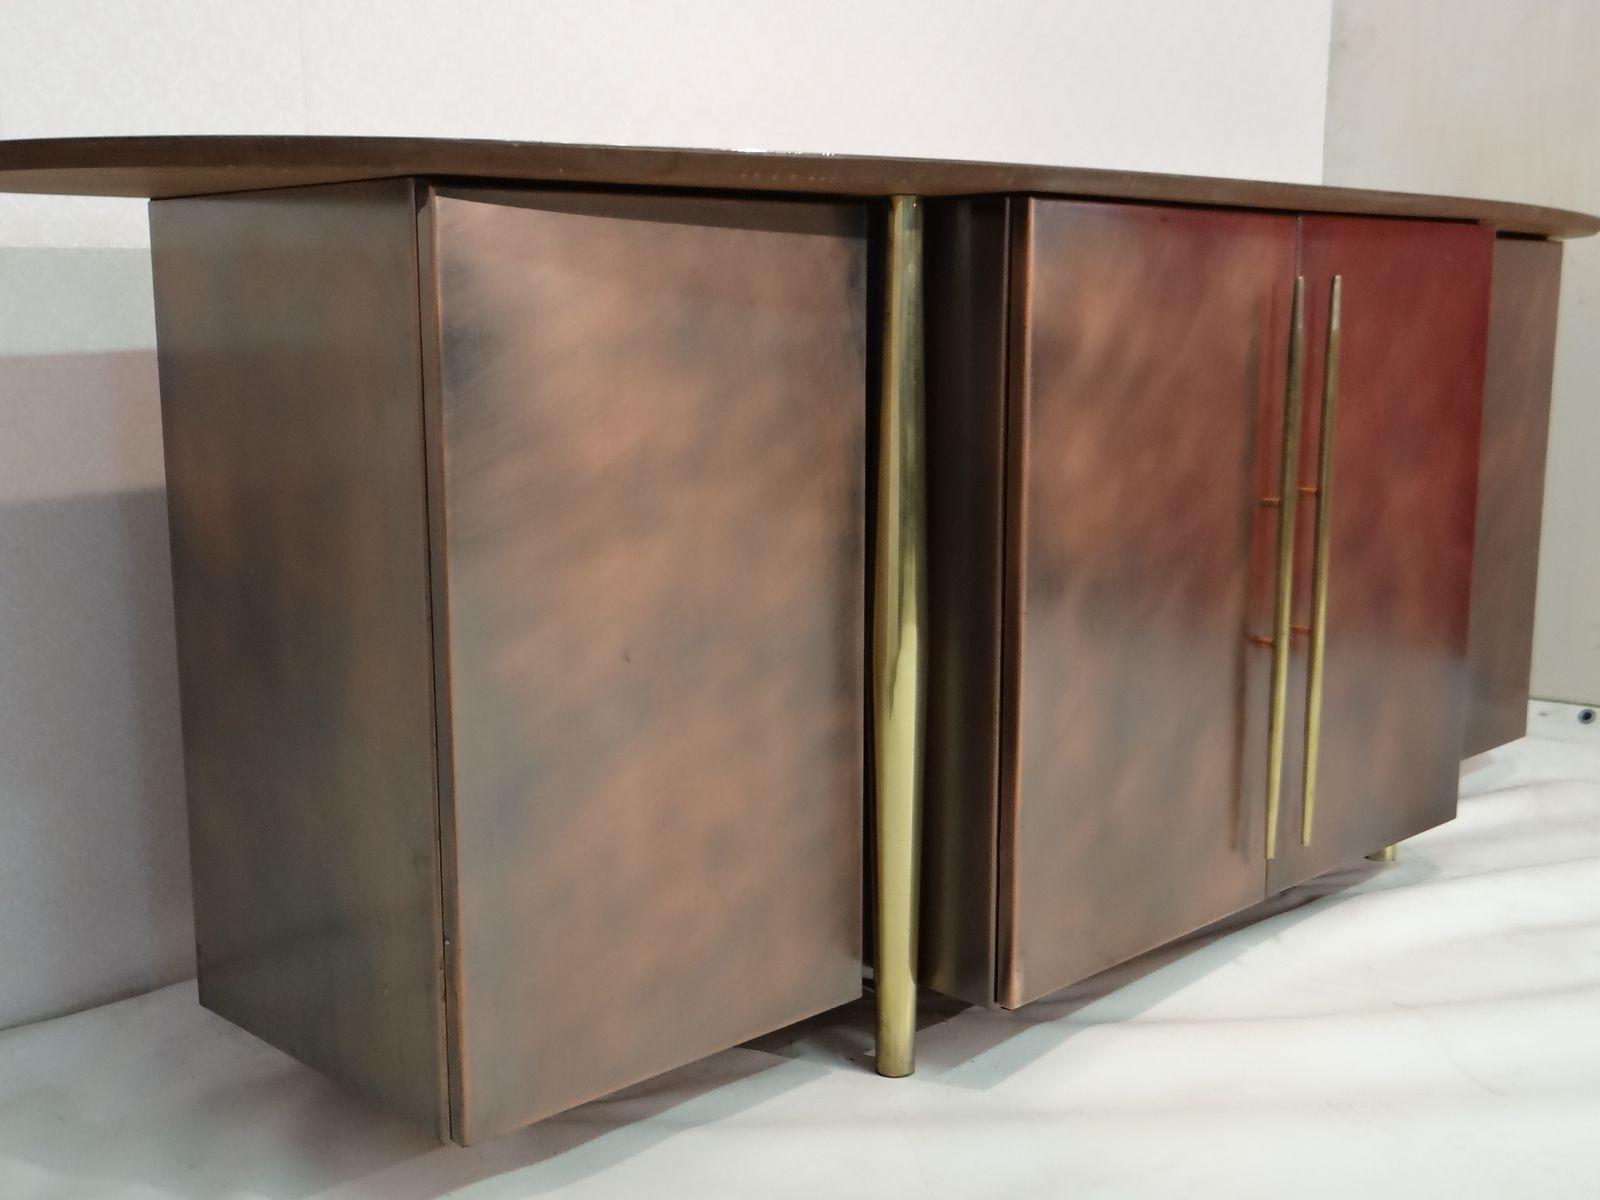 Vintage Brass Sideboard From Belgo Chrom For Sale At Pamono pertaining to Aged Brass Sideboards (Image 28 of 30)